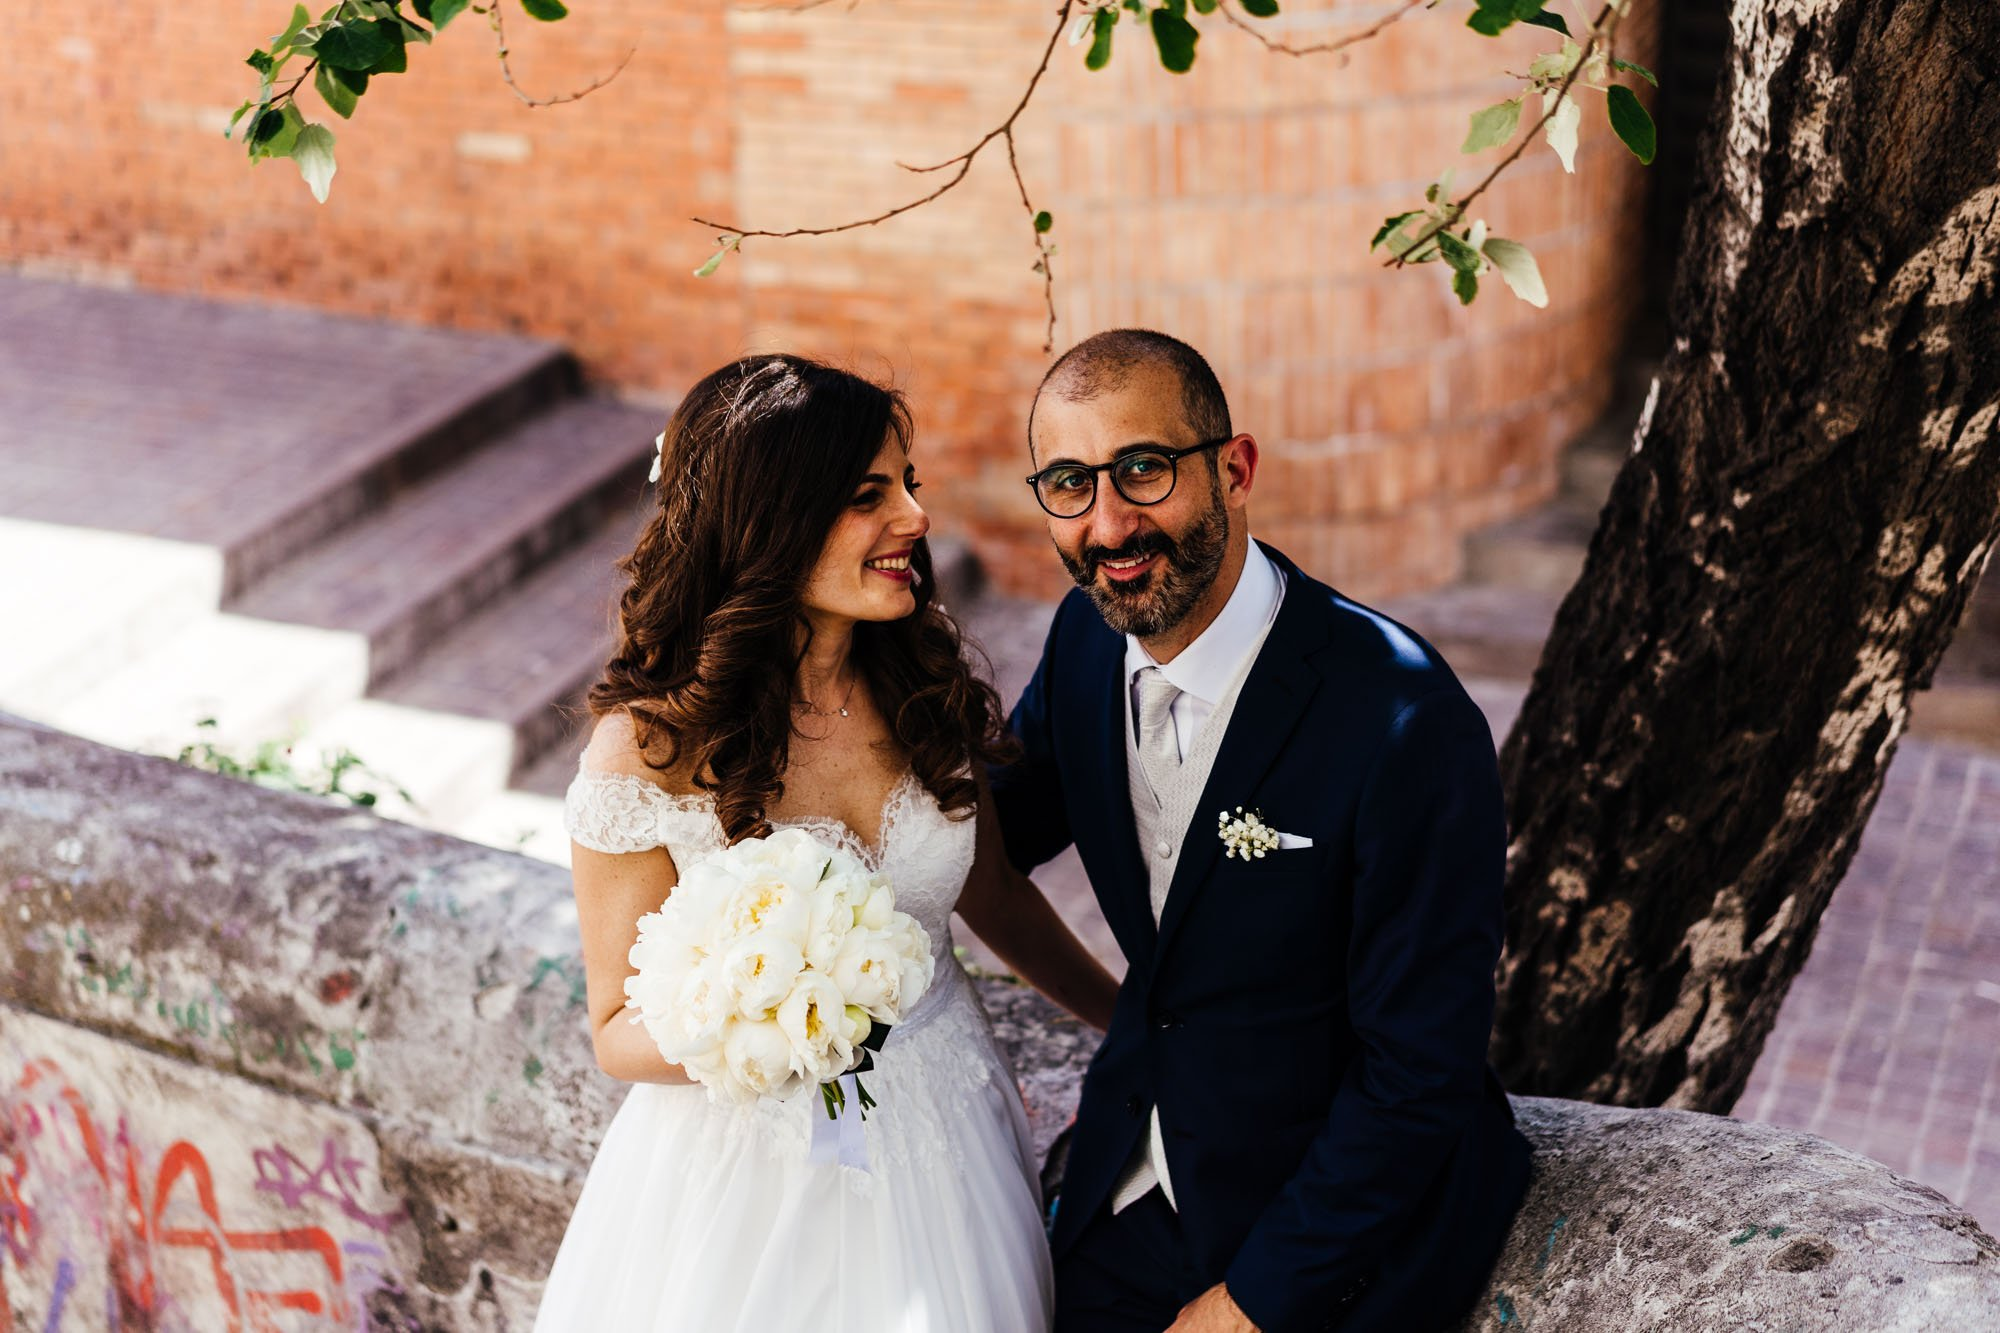 wedding-in-italy-mary-mimmo-47